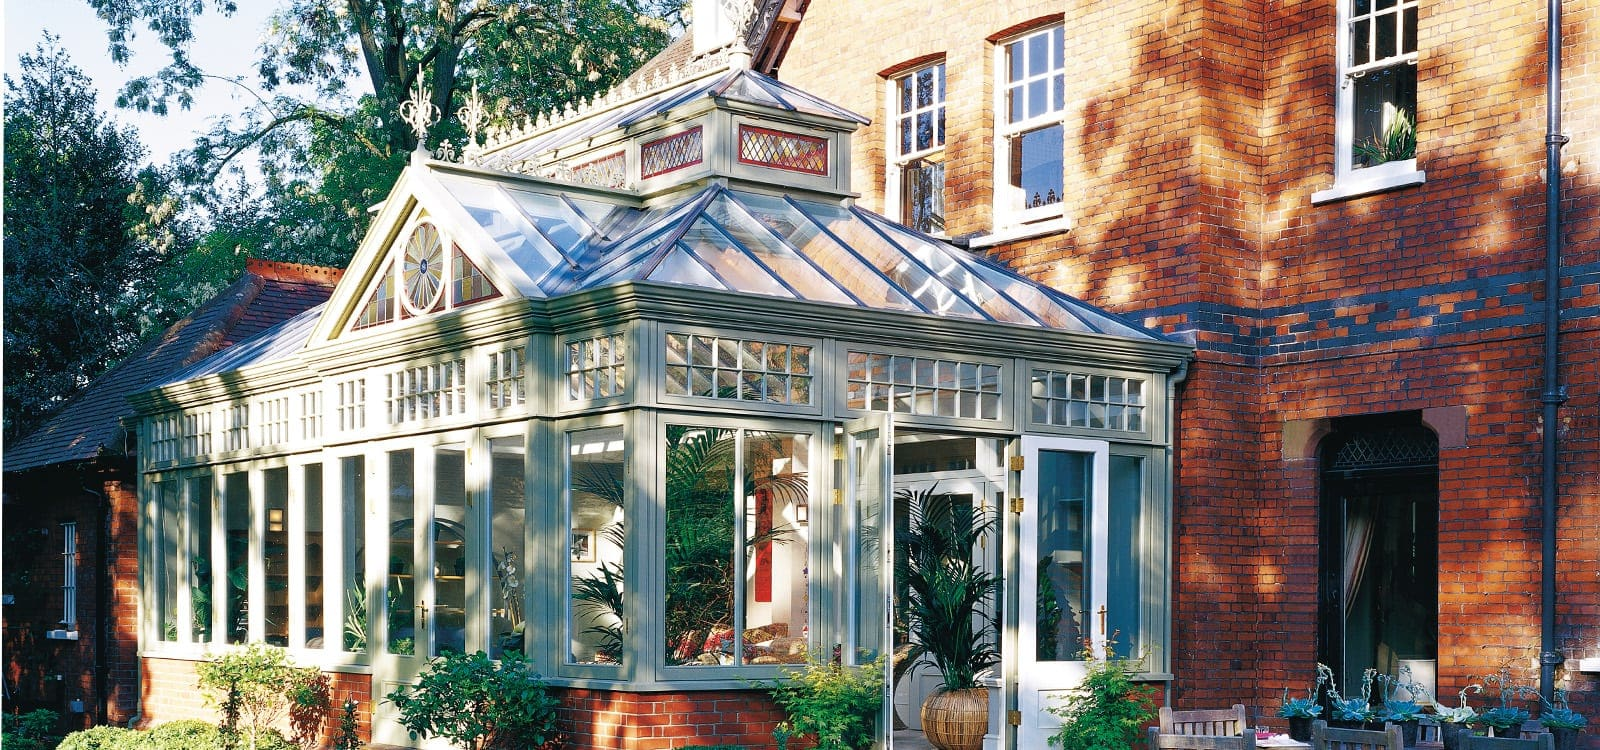 Westbury warns conservatory owners to plan for Summer months